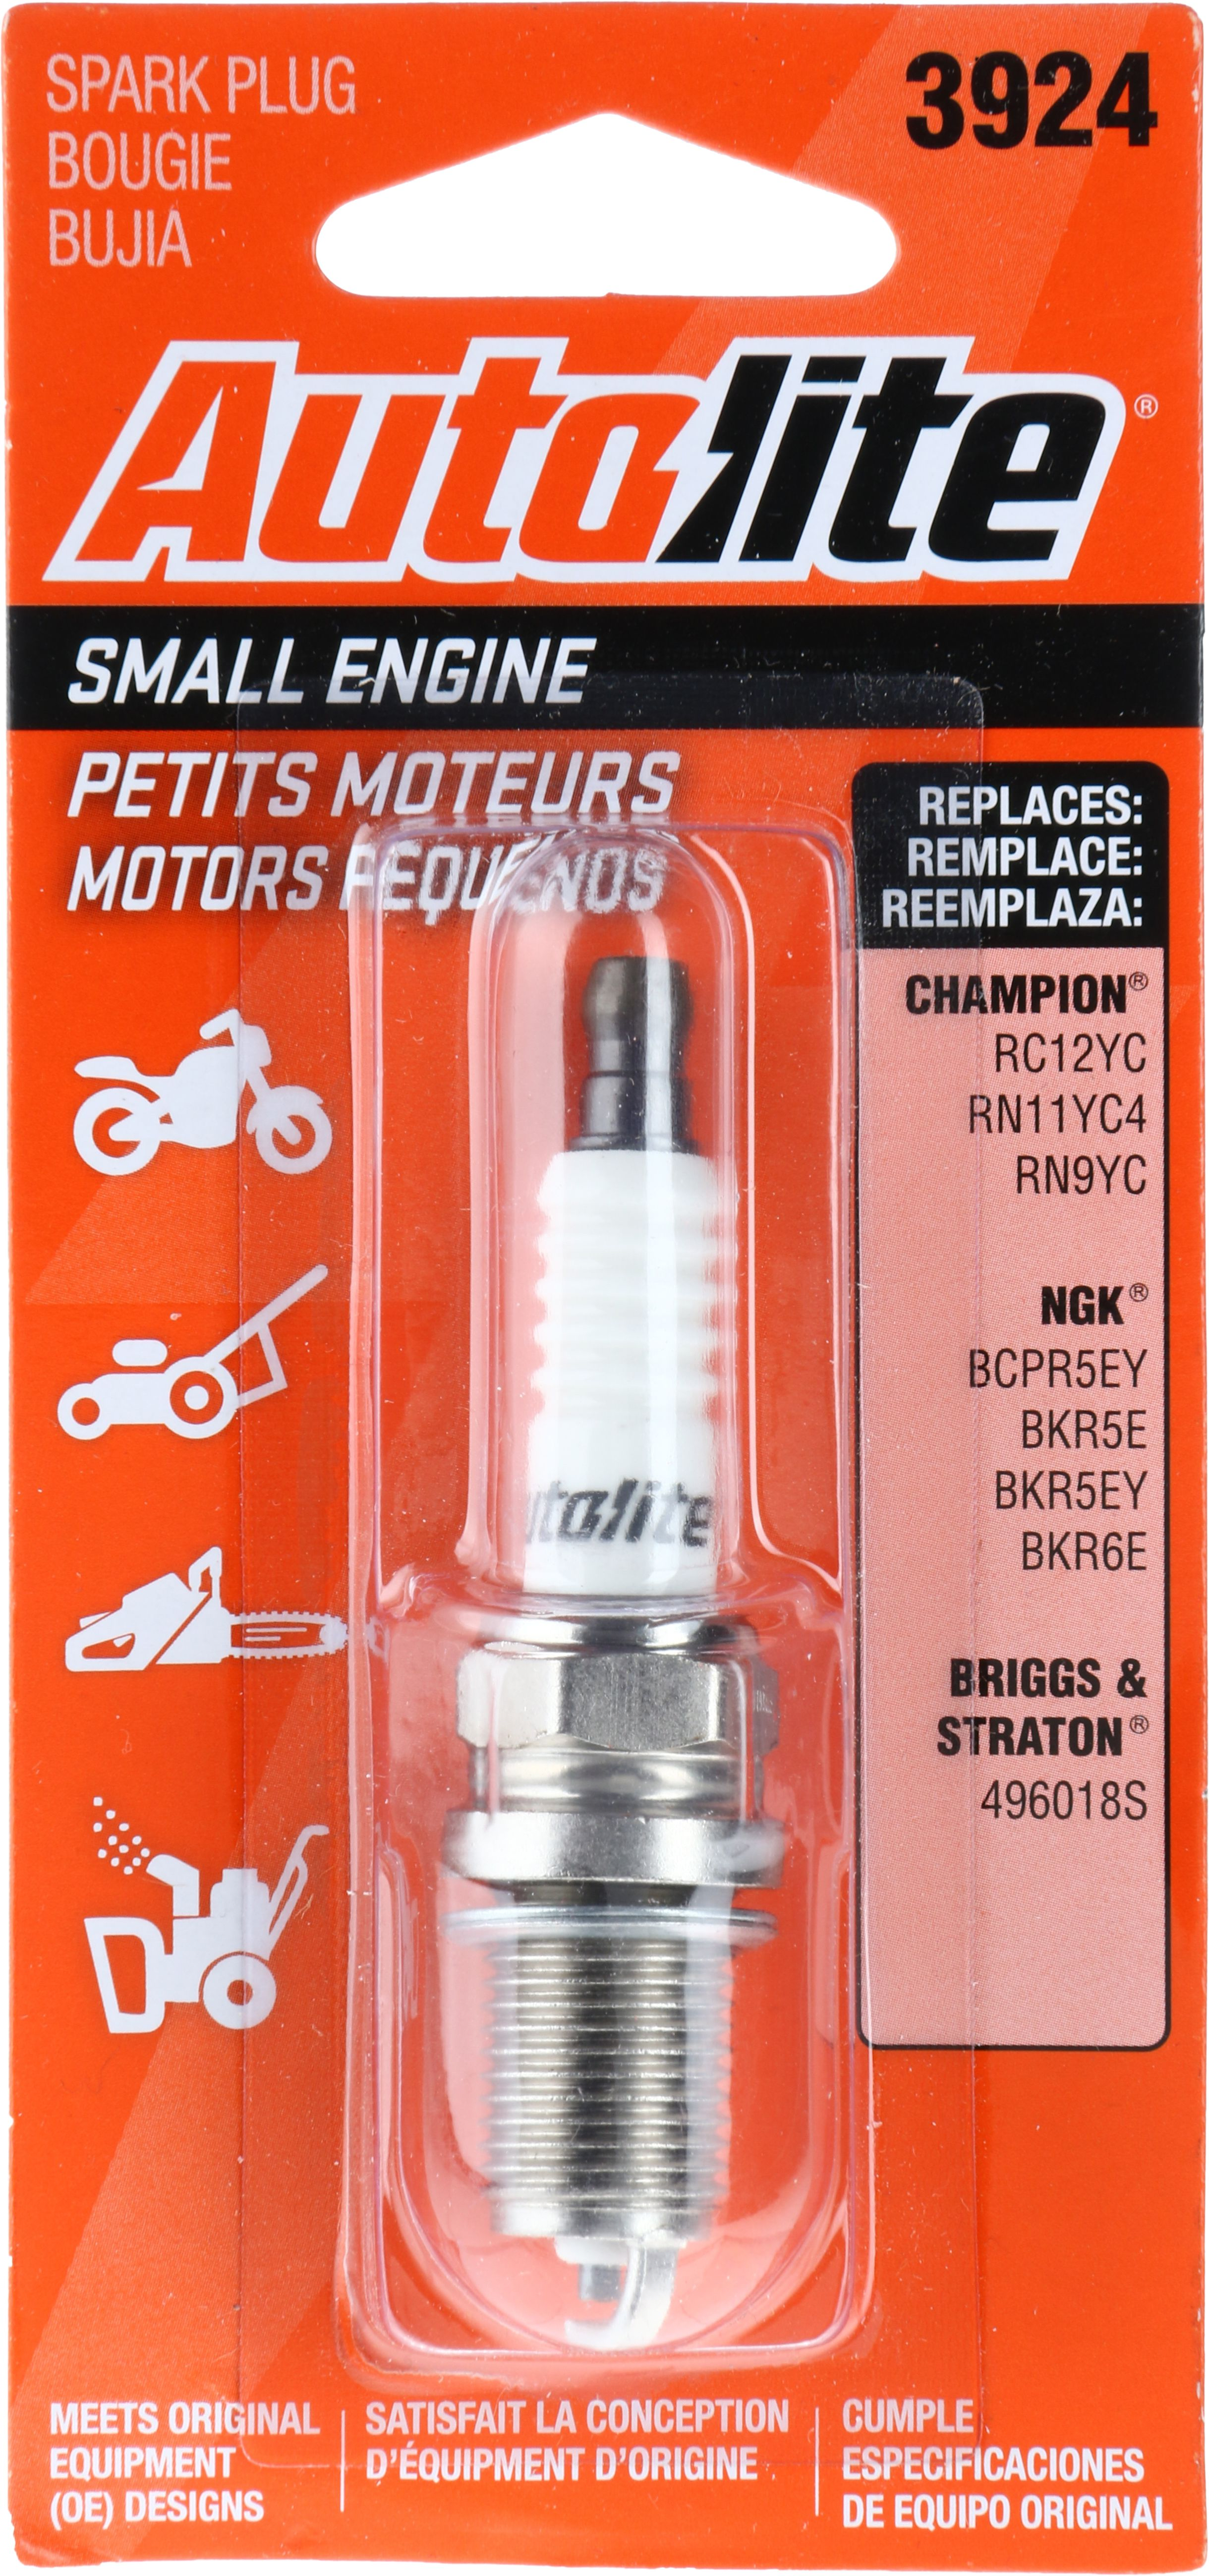 Autolite Small Engine Spark Plug, 3924 for Select Briggs & Stratton and Kohler Engine Power Equipment and Lawn Mowers